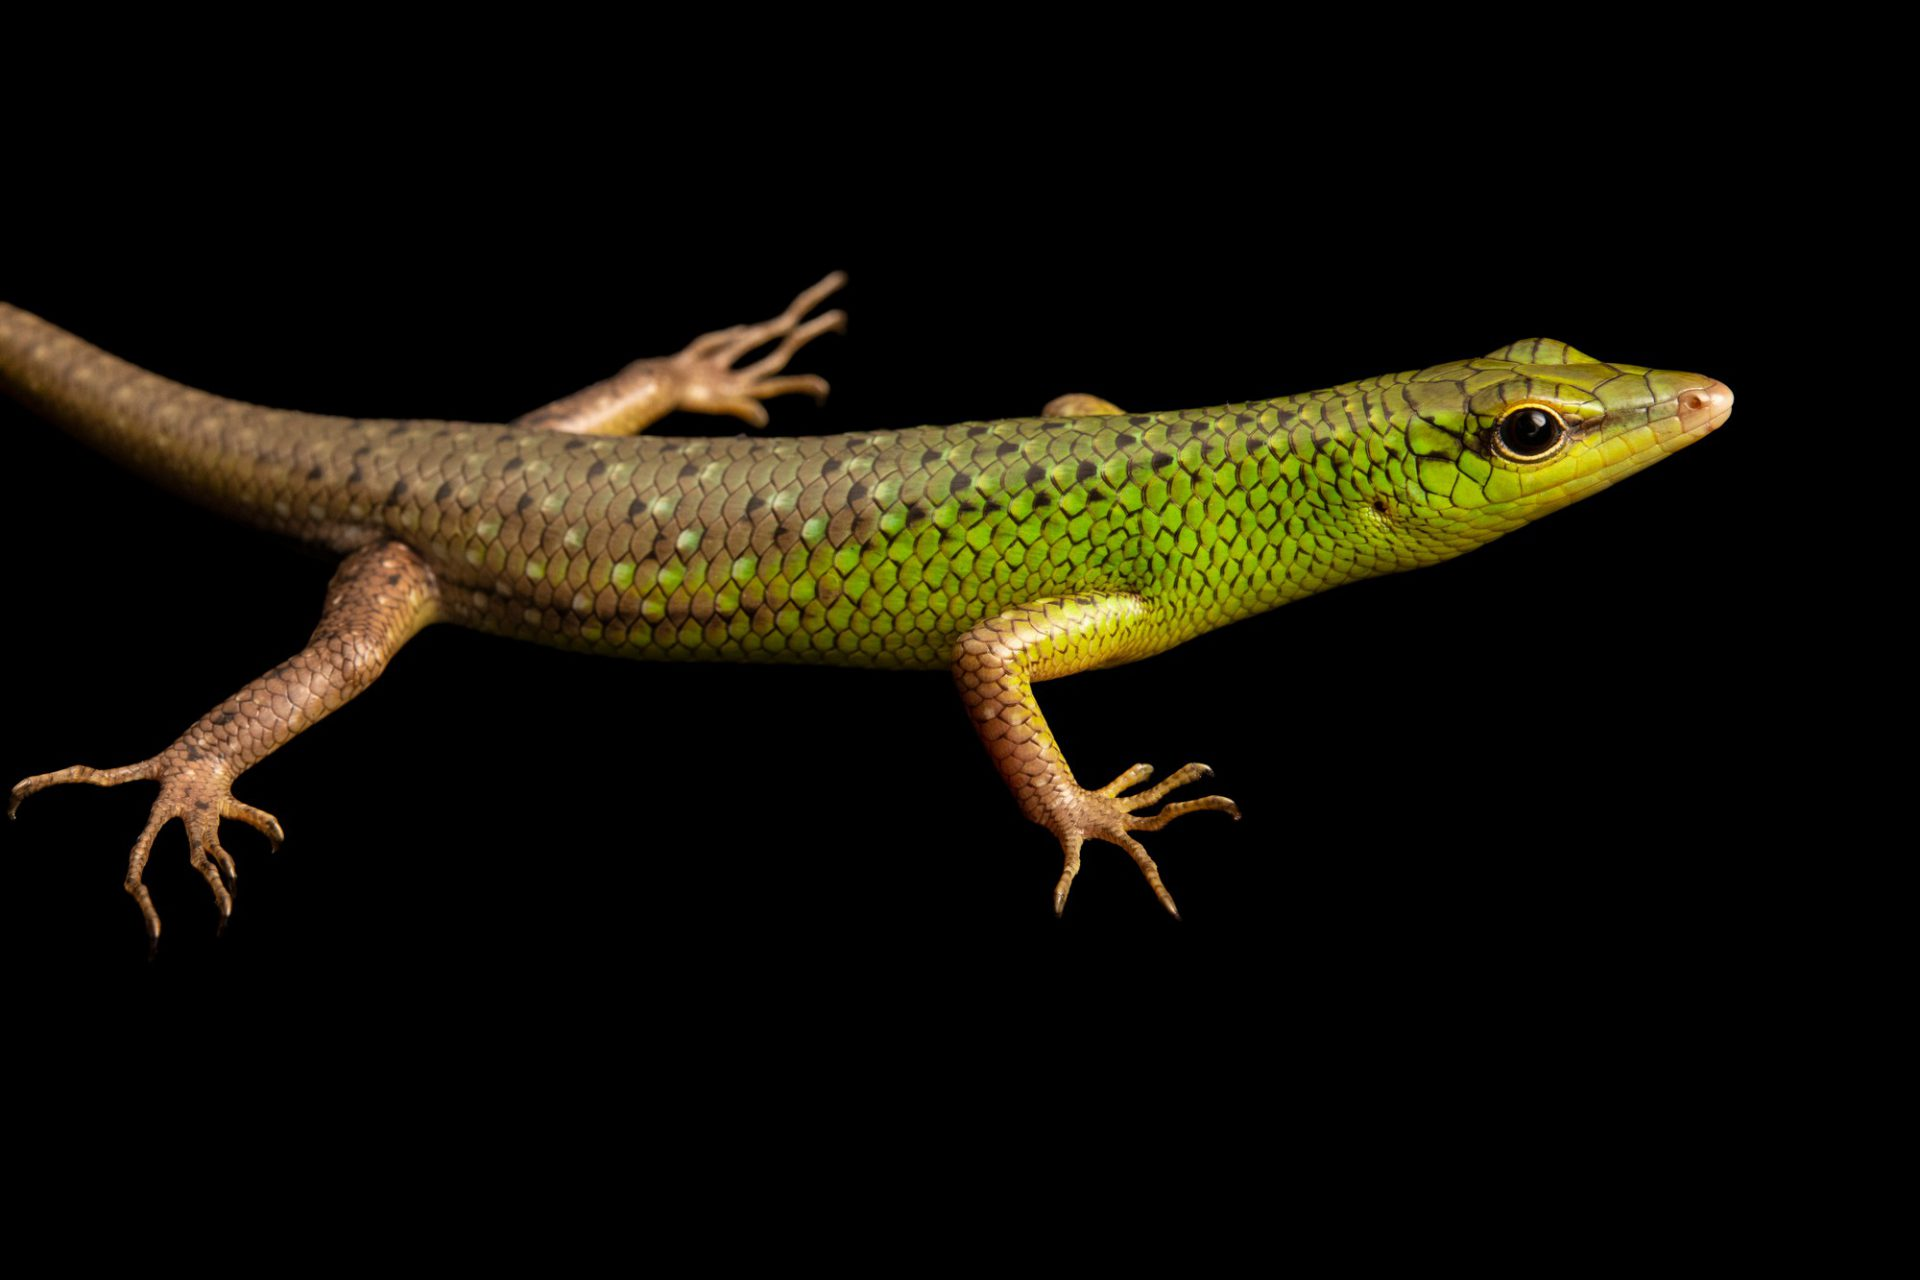 Photo: Emerald skink (Lamprolepis smaragdinus philippinensis) at Crocolandia in the Philippines.